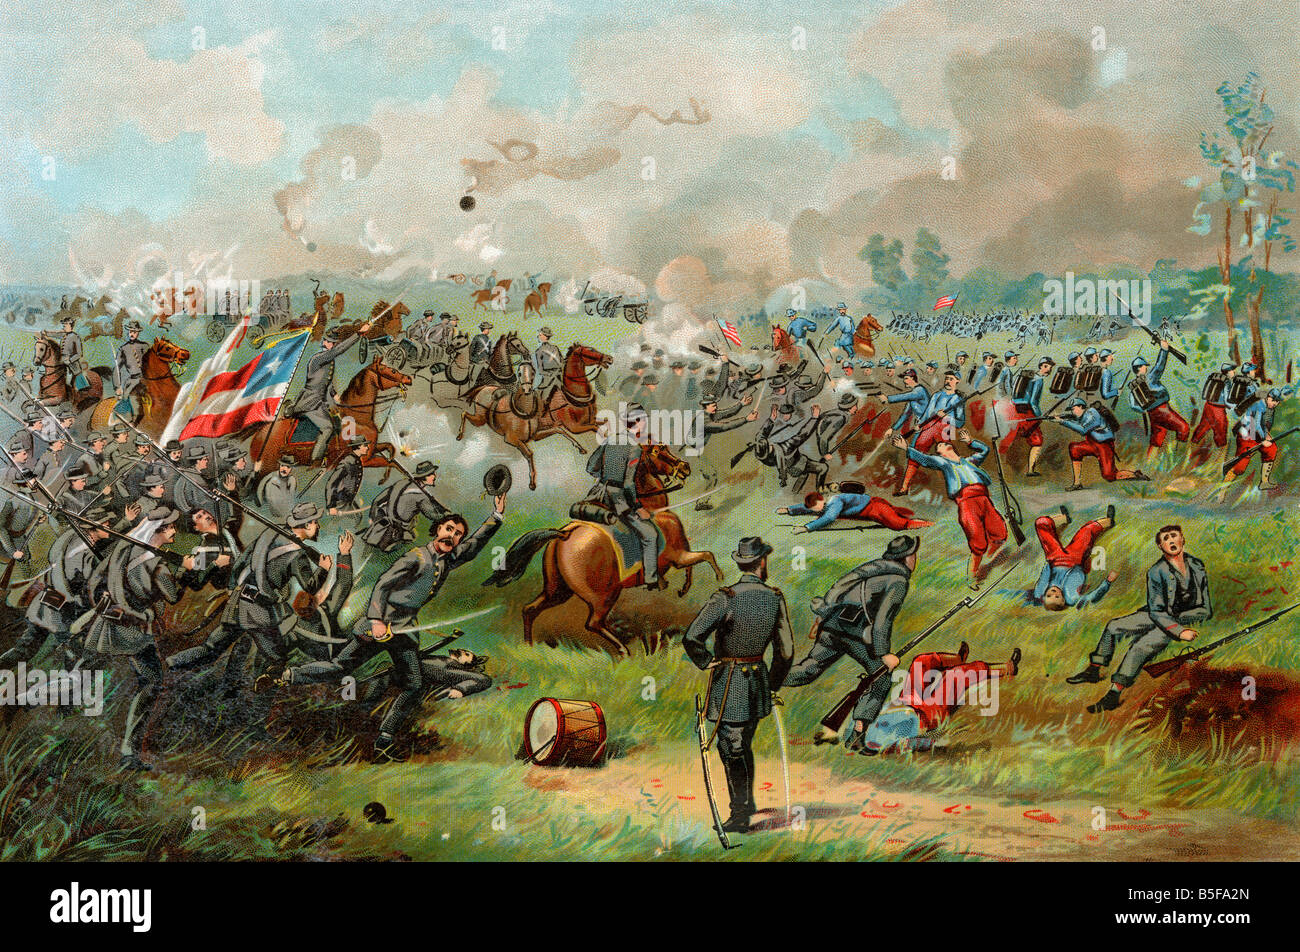 General Stonewall Jackson leading Confederates at the battle of Bull Run 1861. Color lithograph - Stock Image